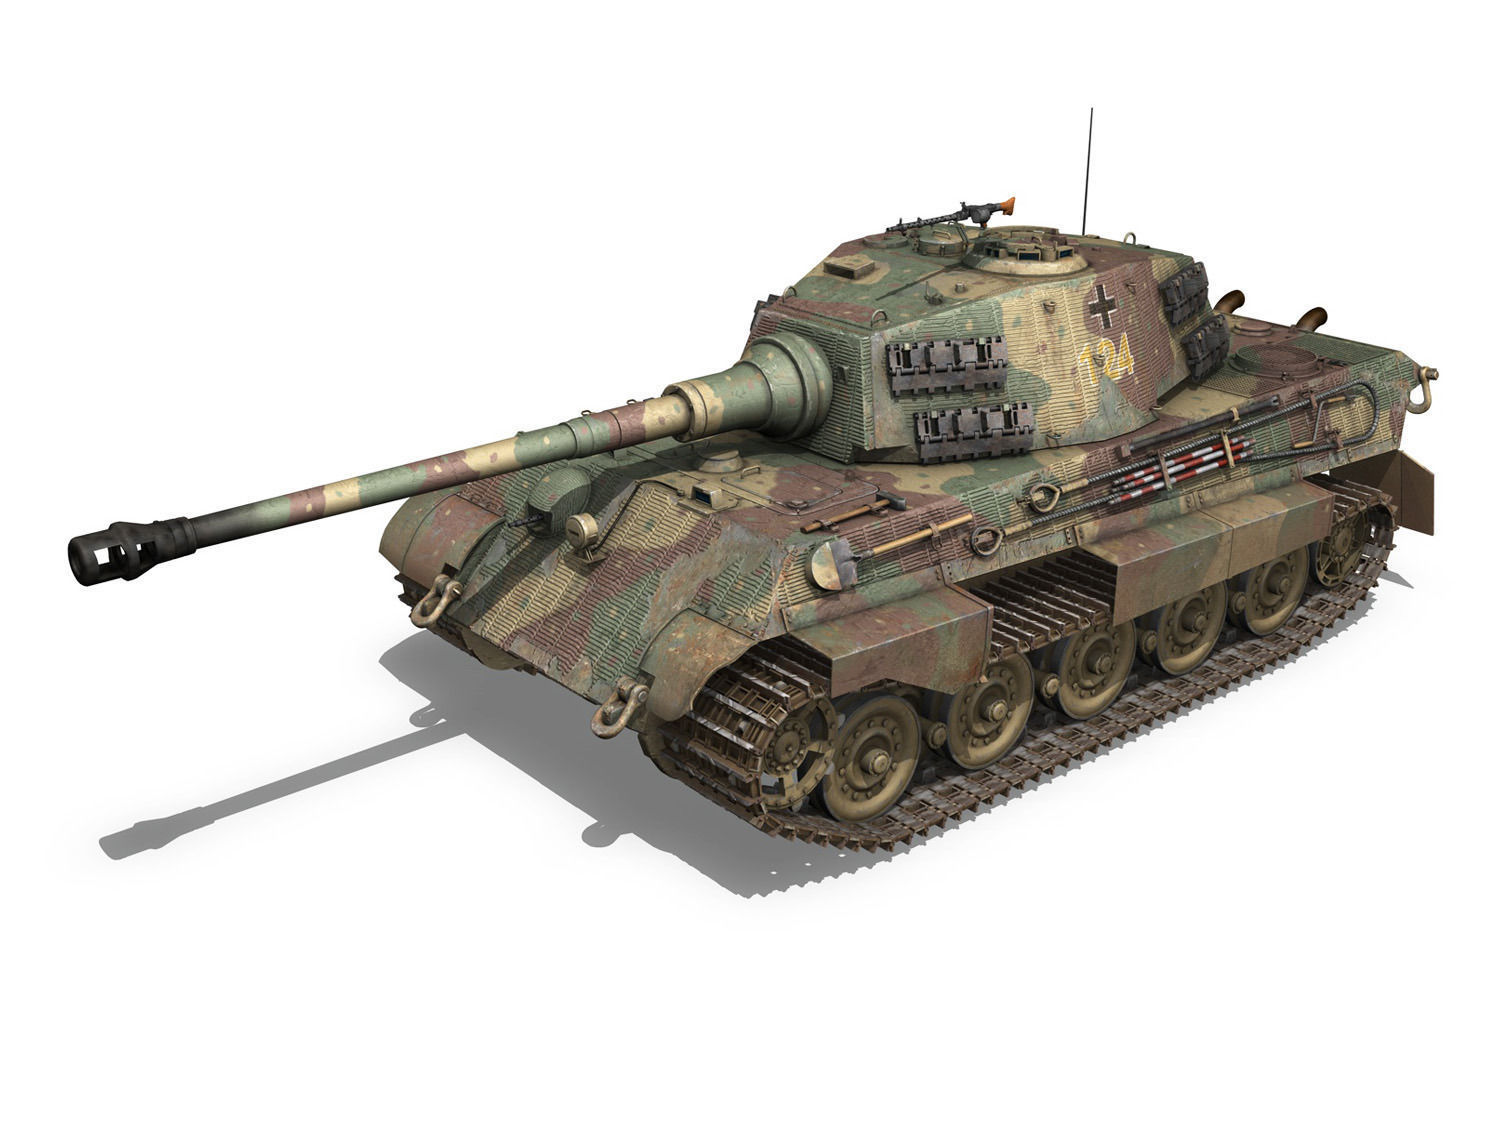 panzerkampfwagen vi ausf b tiger ii 3d model. Black Bedroom Furniture Sets. Home Design Ideas